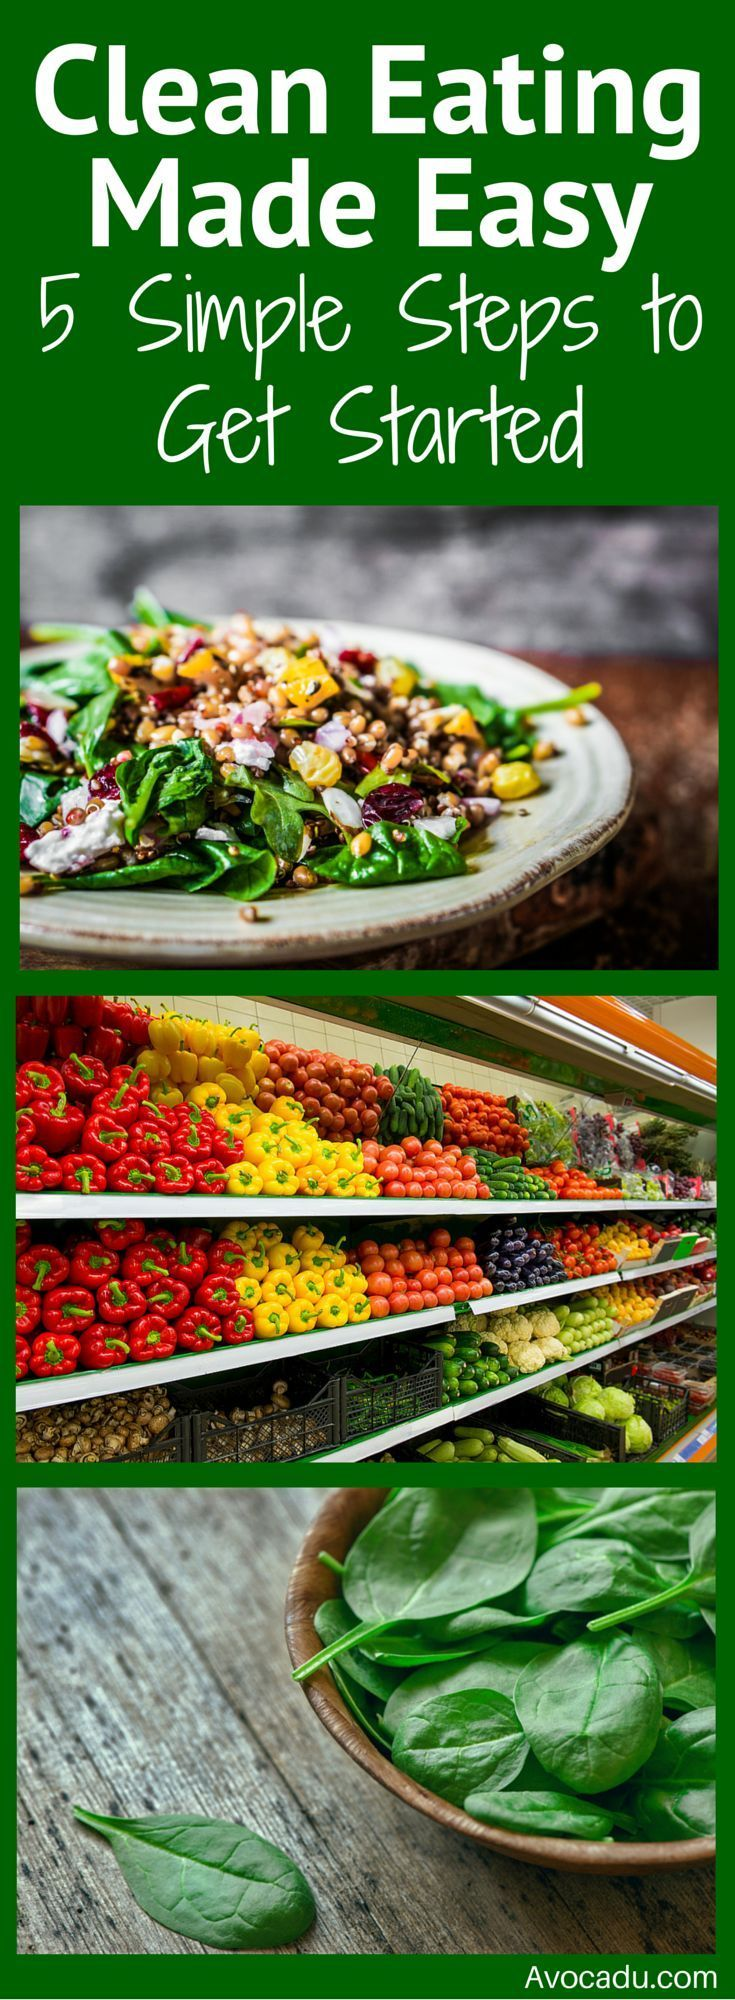 Clean Eating for Beginners | Clean Eating to Lose Weight | Diet Plans to Lose Weight for Women |  http://avocadu.com/clean-eating-made-easy-5-simple-steps-to-getting-started/